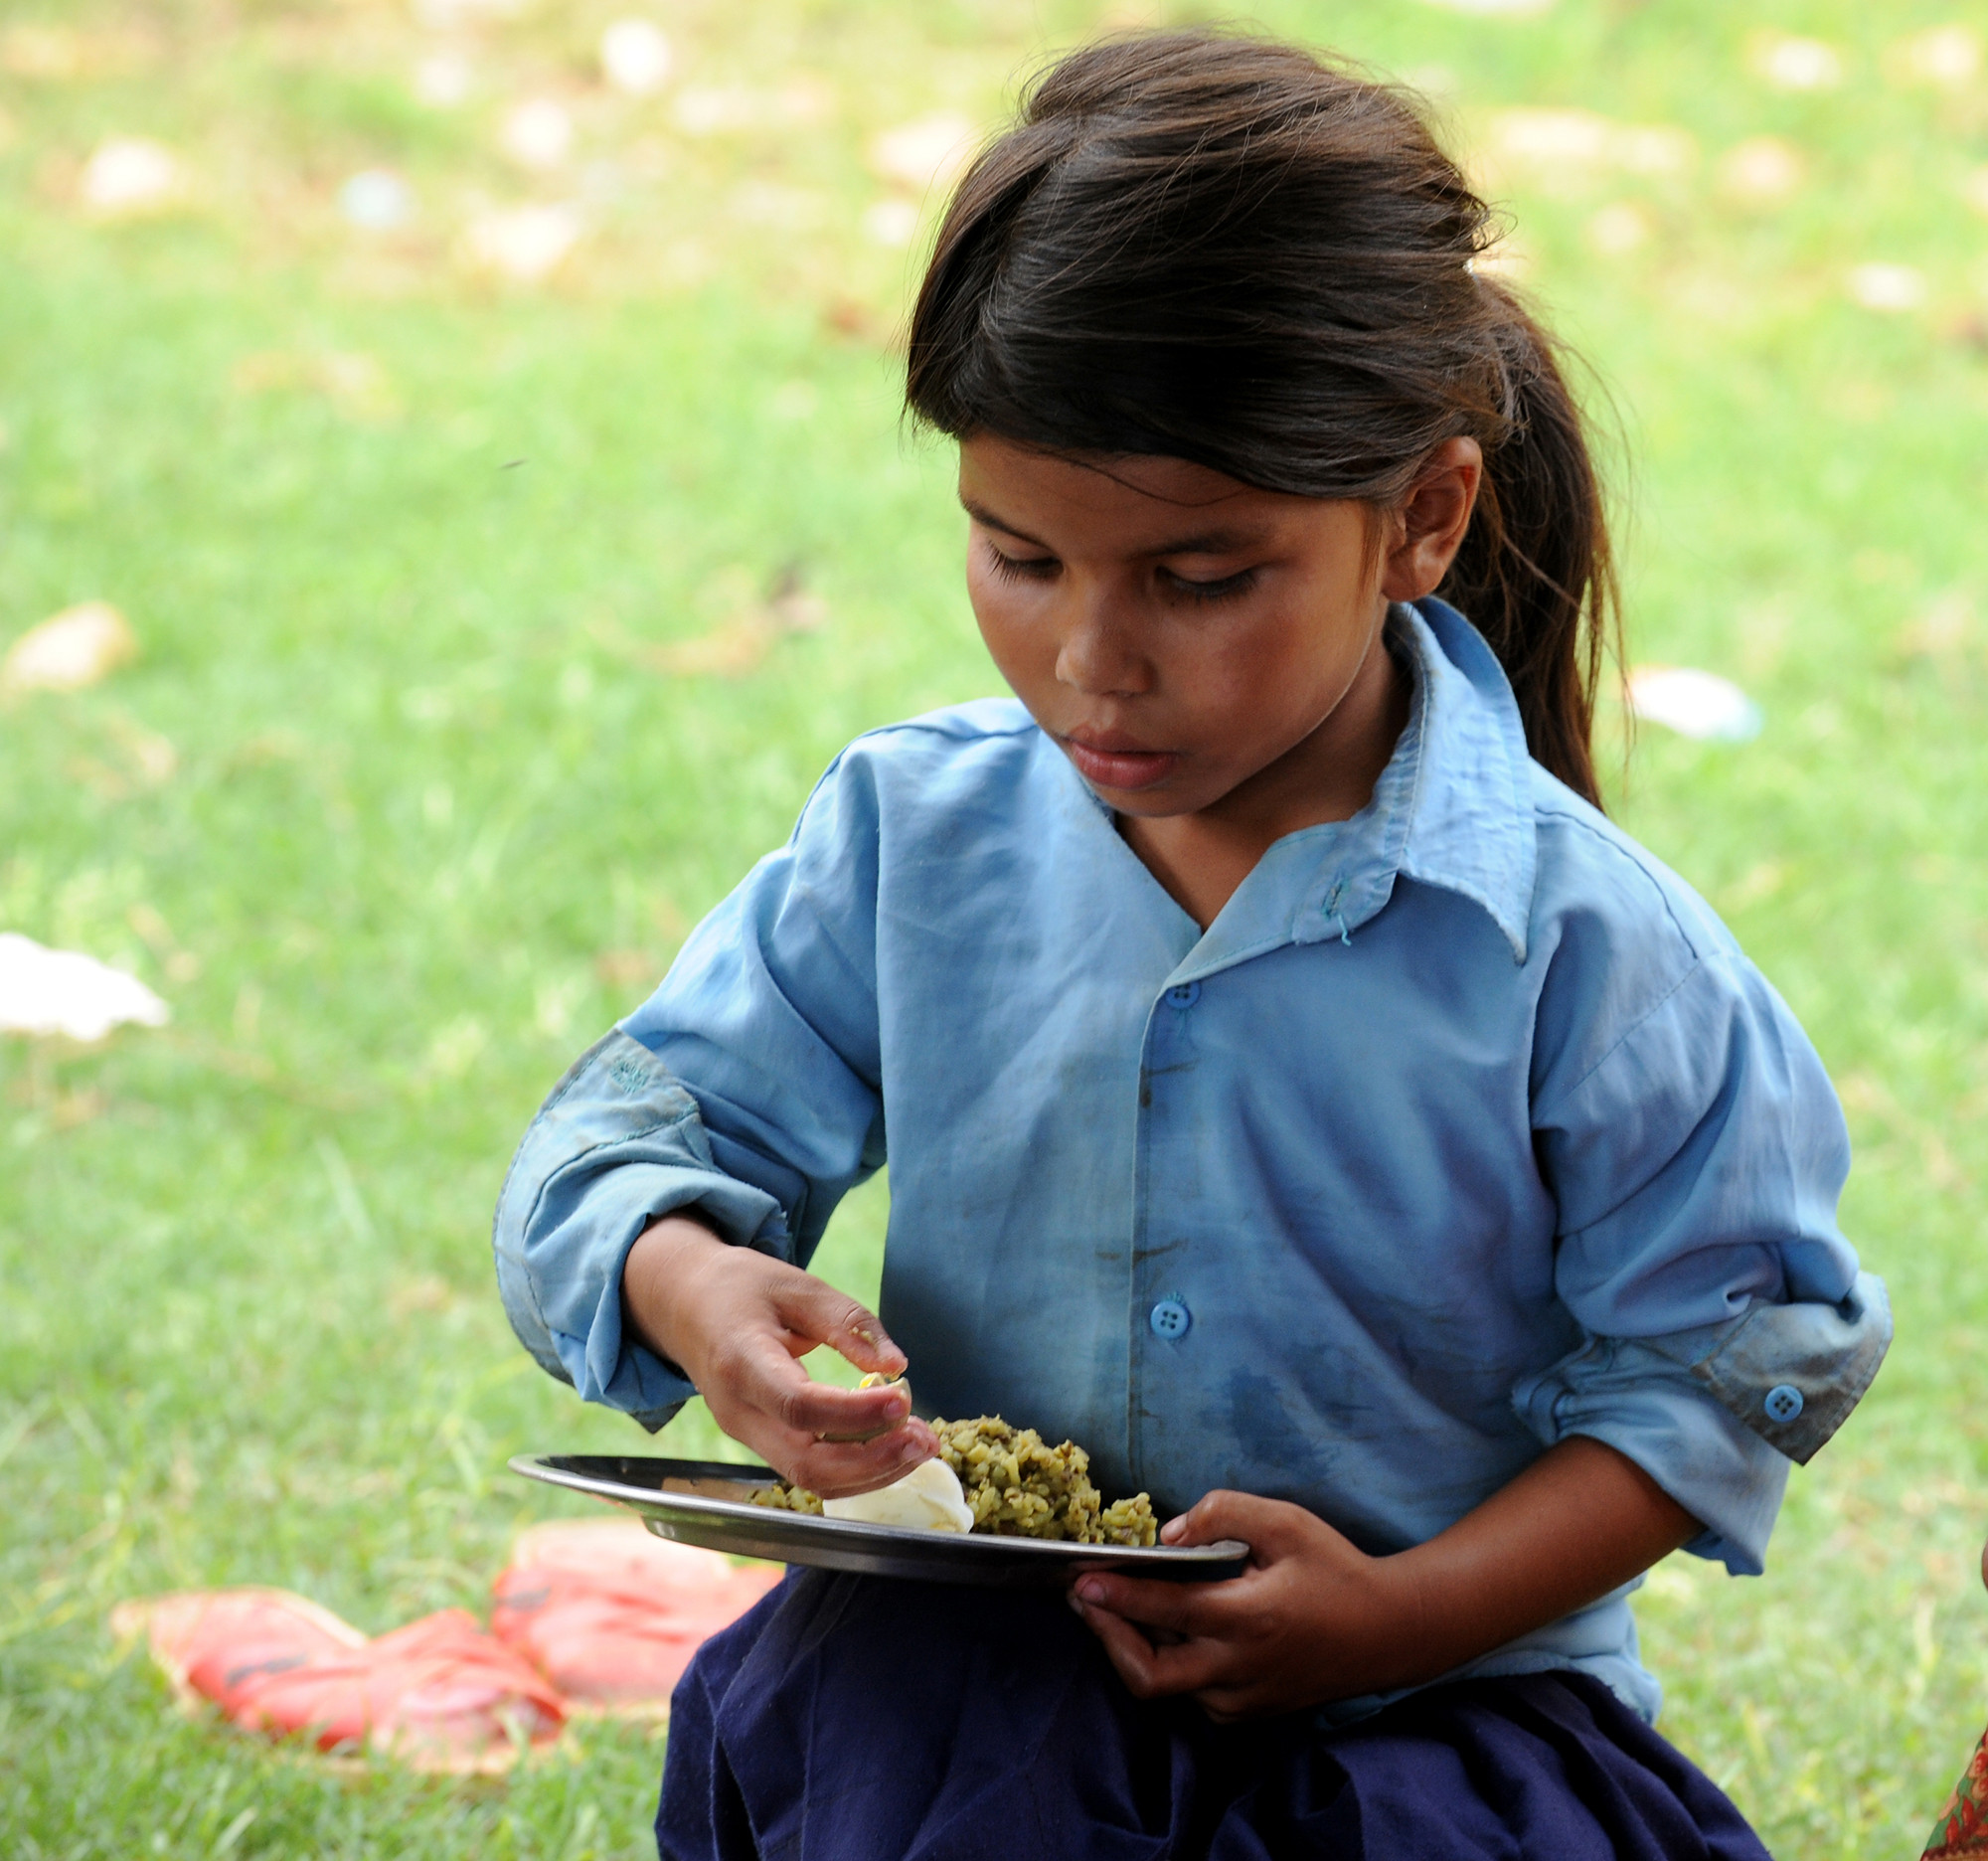 Plan International is working to improve the nutritional wellbeing of children after the Nepal earthquake